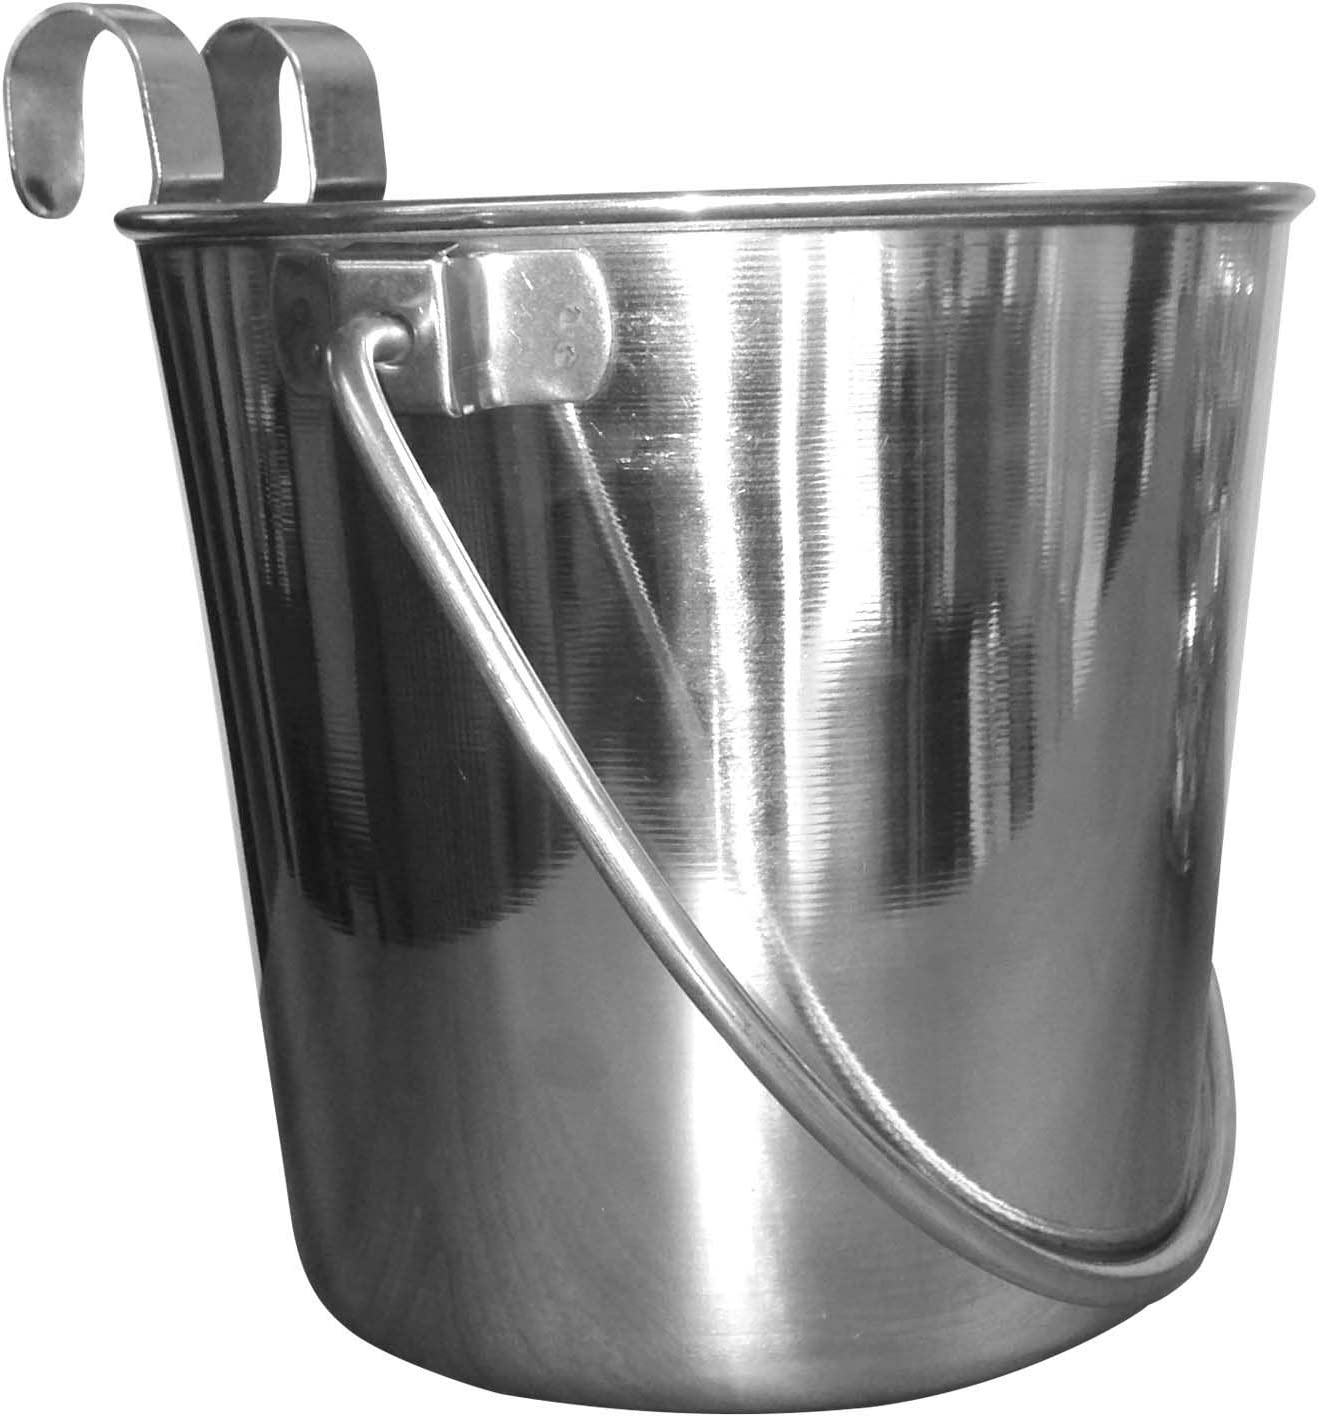 QT Dog Flat Sided Stainless Steel Bucket with Hooks, 9 Quart